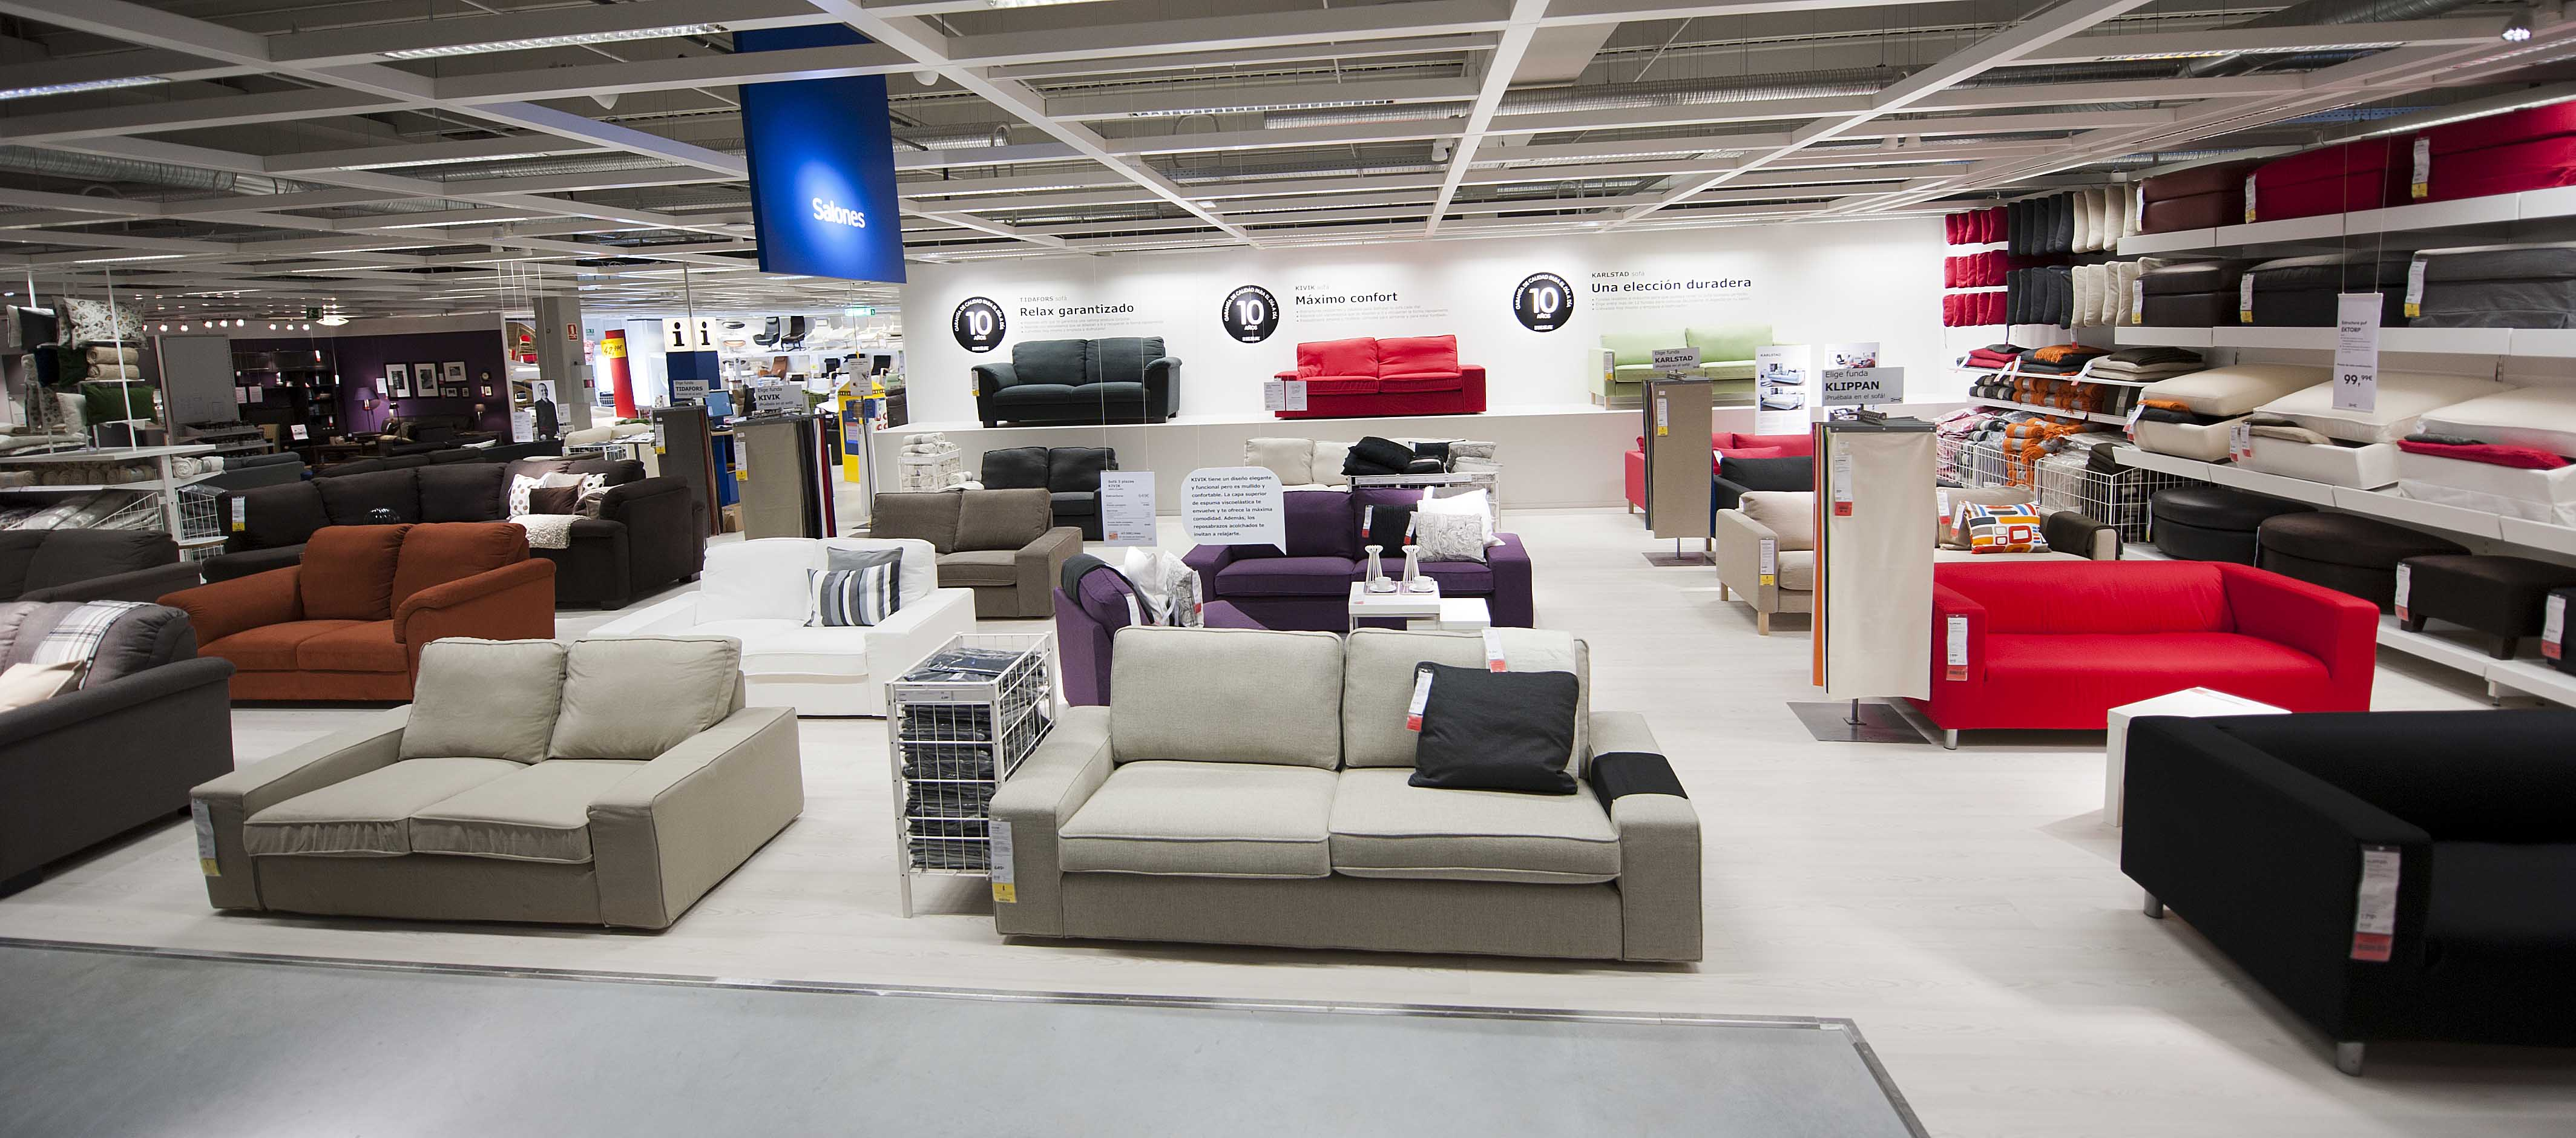 ikea redecora su negocio se abre a la venta de segunda mano para competir con wallapop. Black Bedroom Furniture Sets. Home Design Ideas